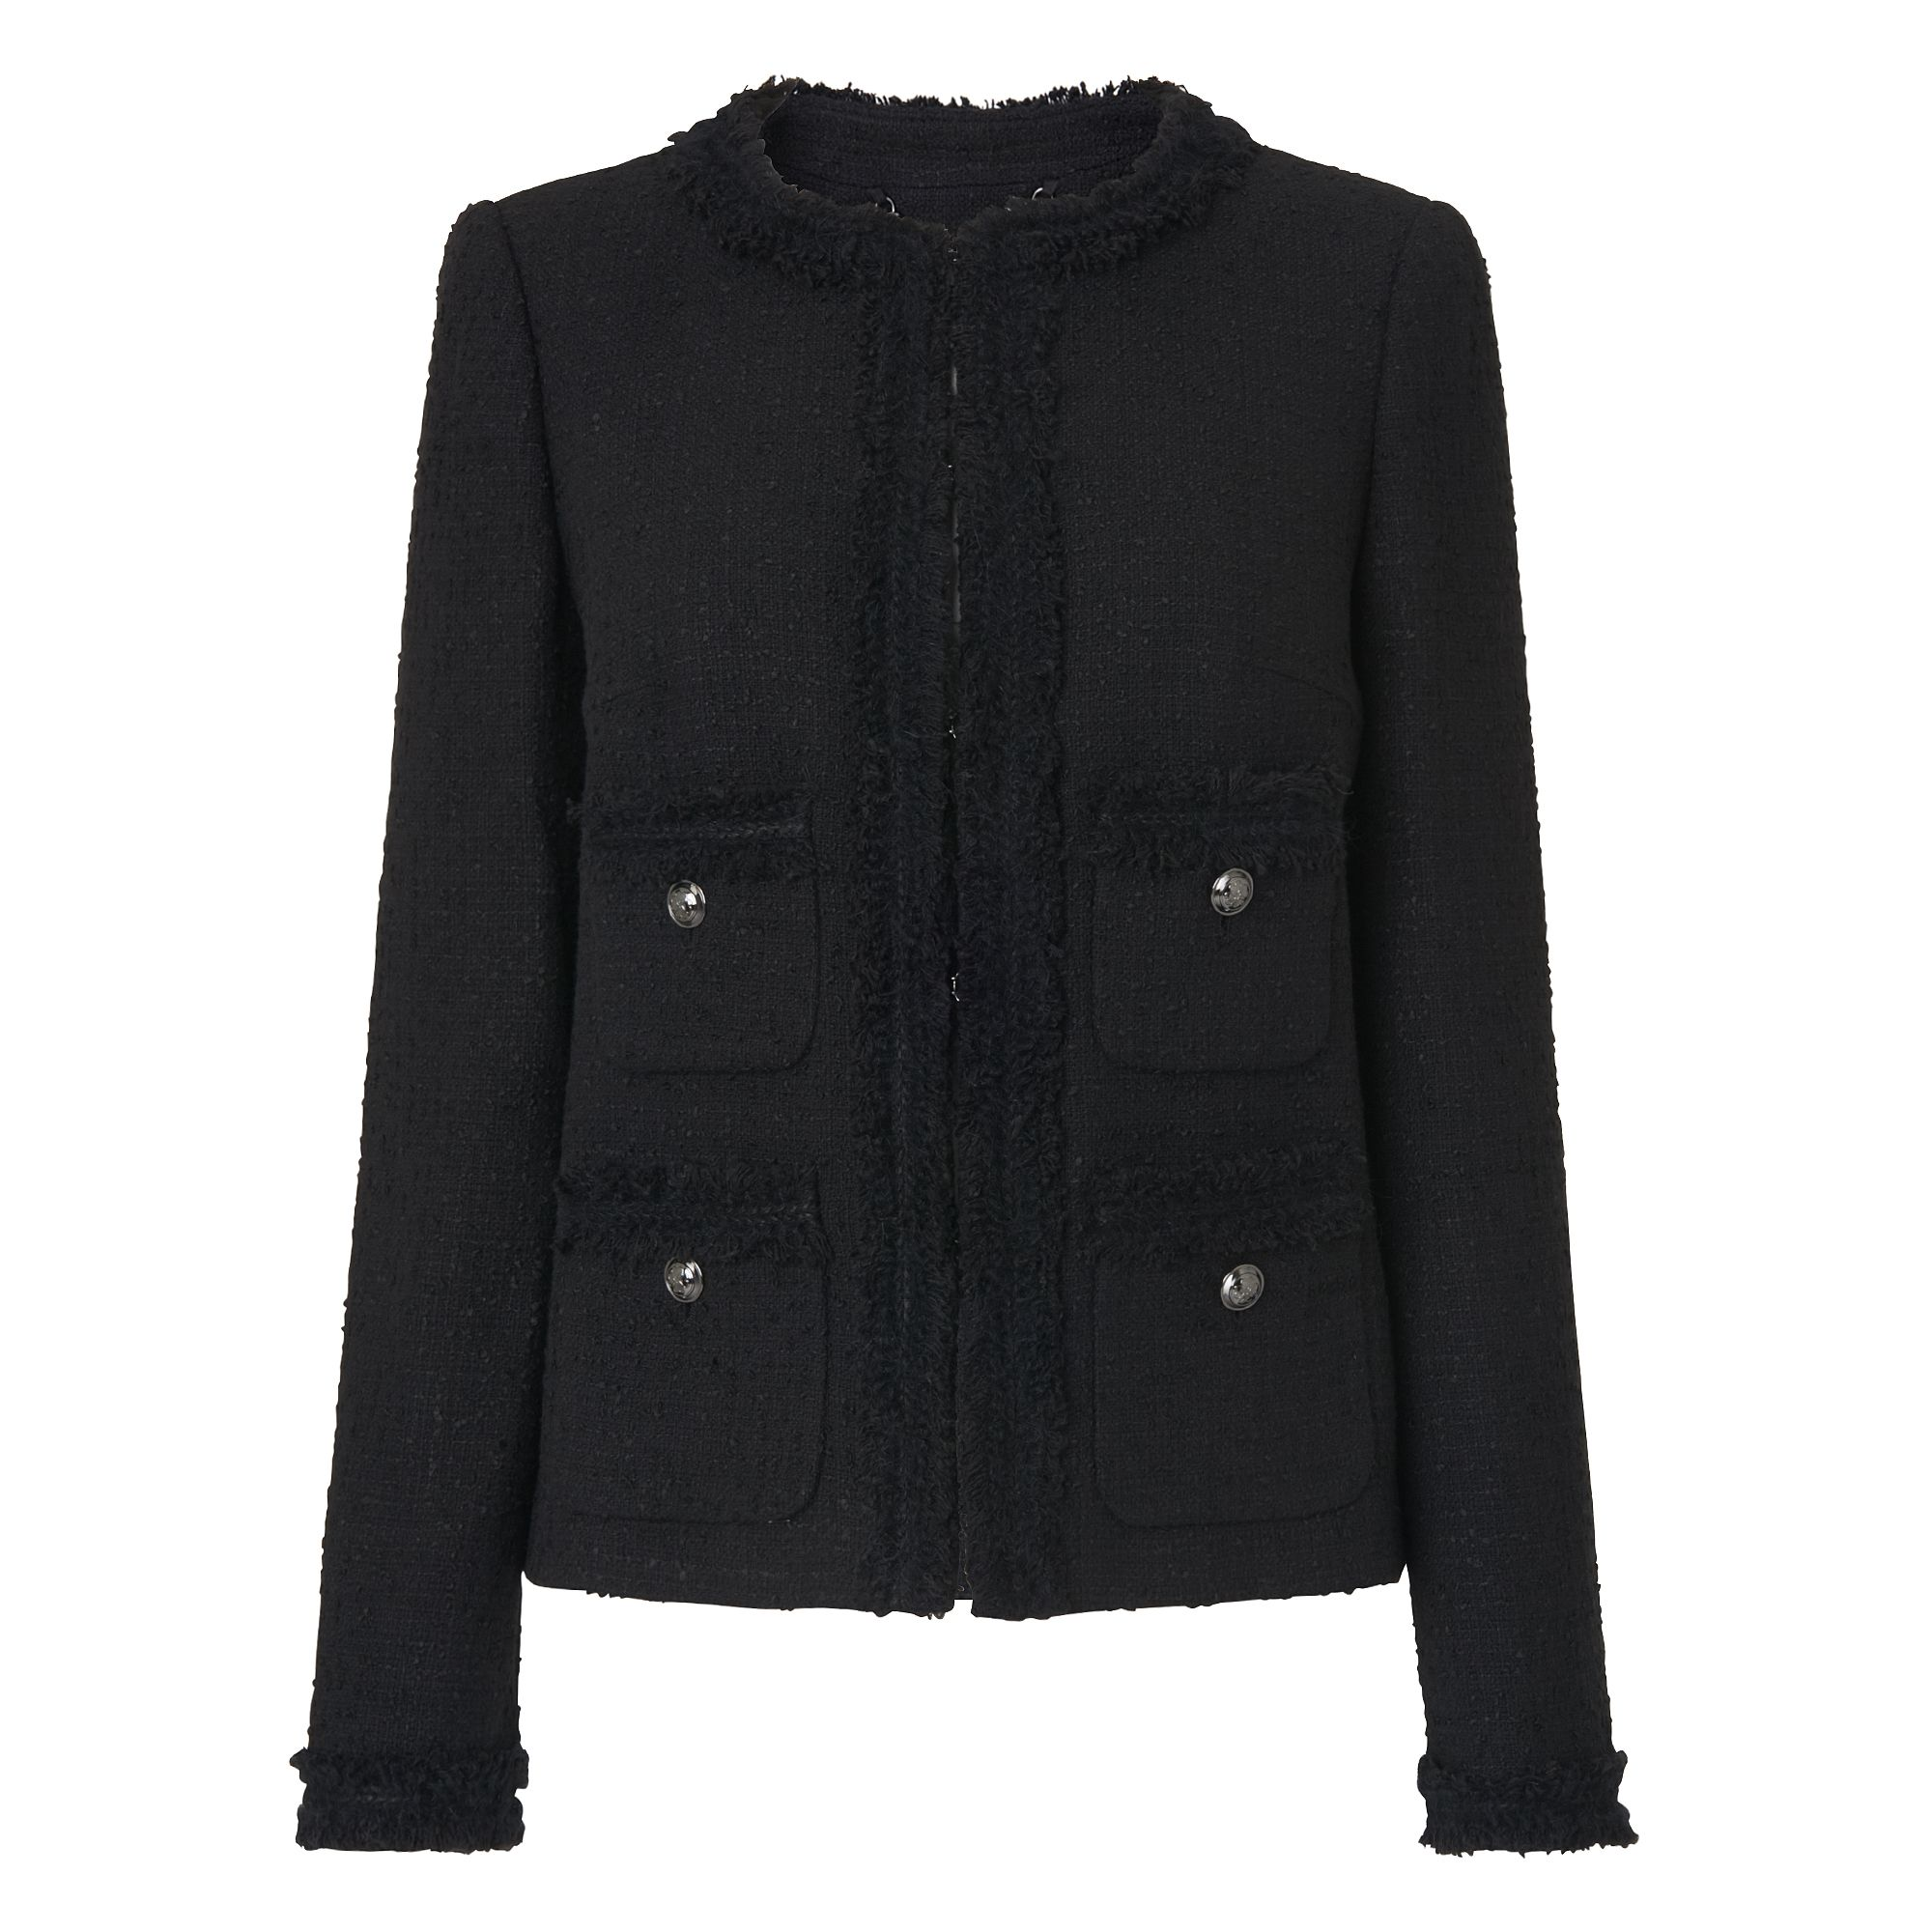 L.K. Bennett Charl Cotton Mix Jackets, Black